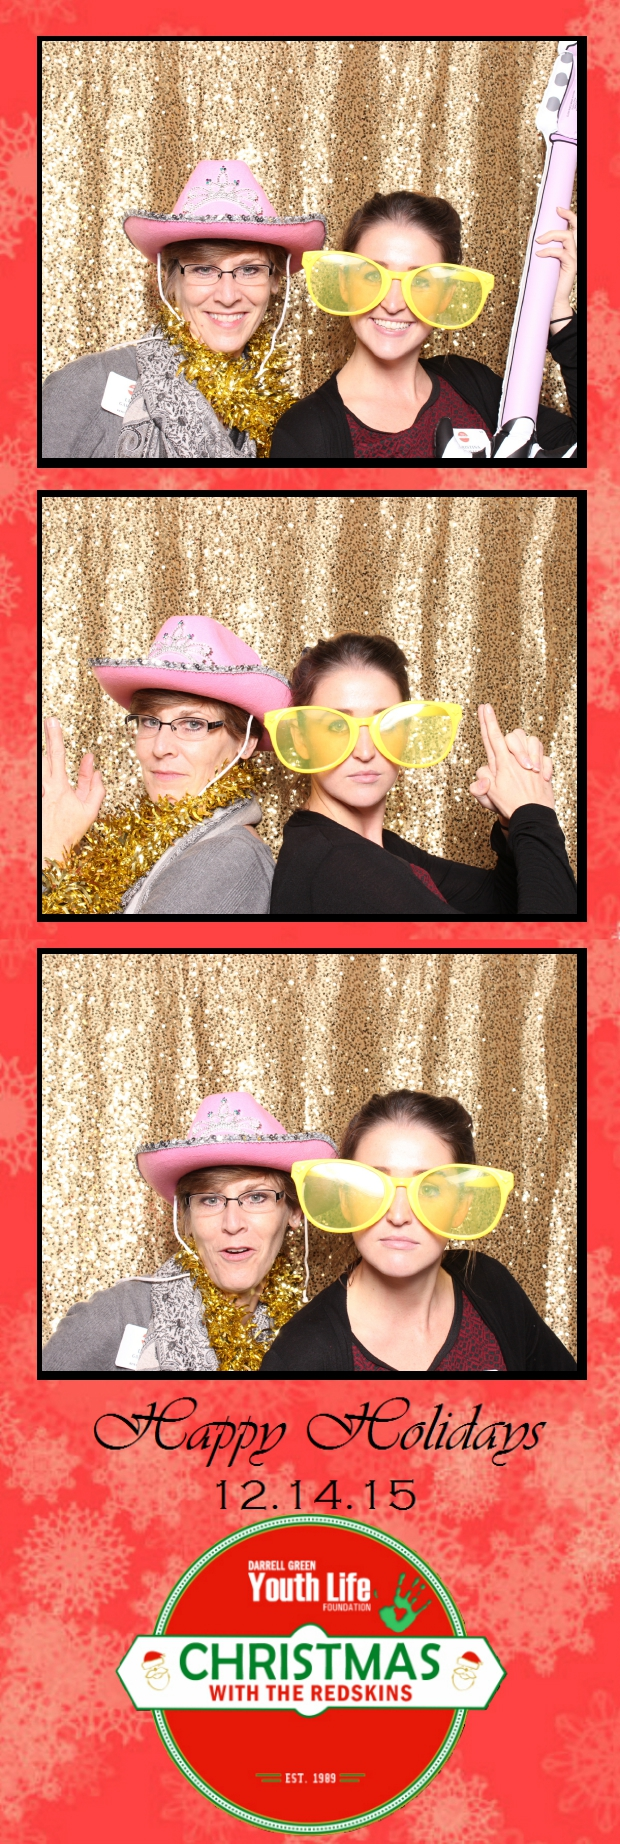 Guest House Events Photo Booth DGYLF Strips (67).jpg